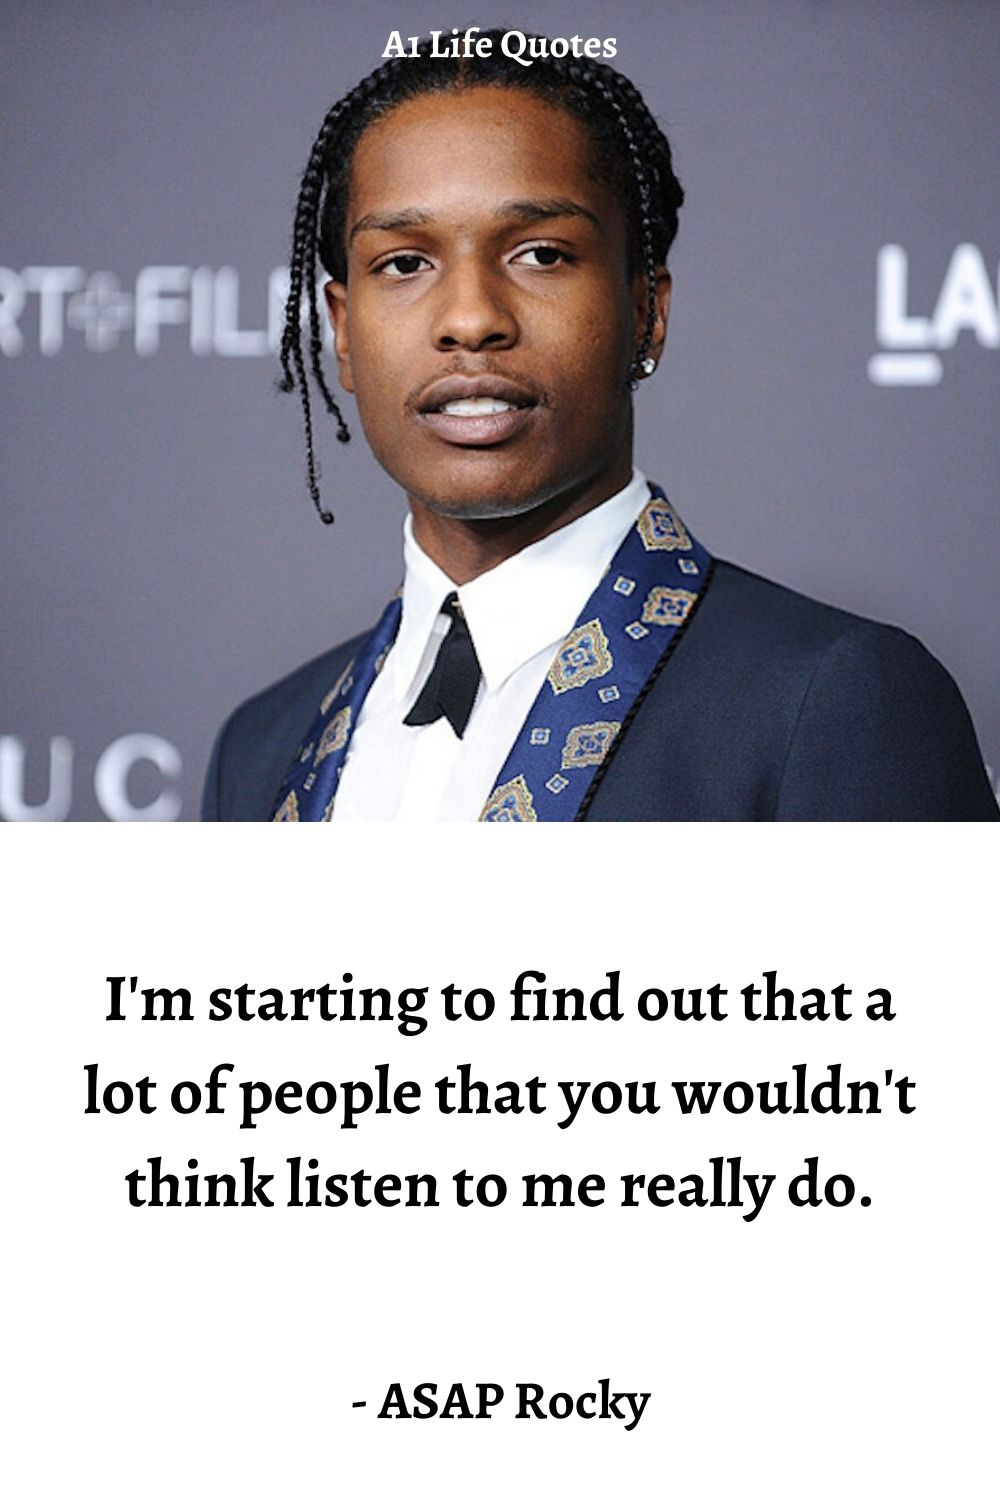 asap rocky quotes for instagram captions